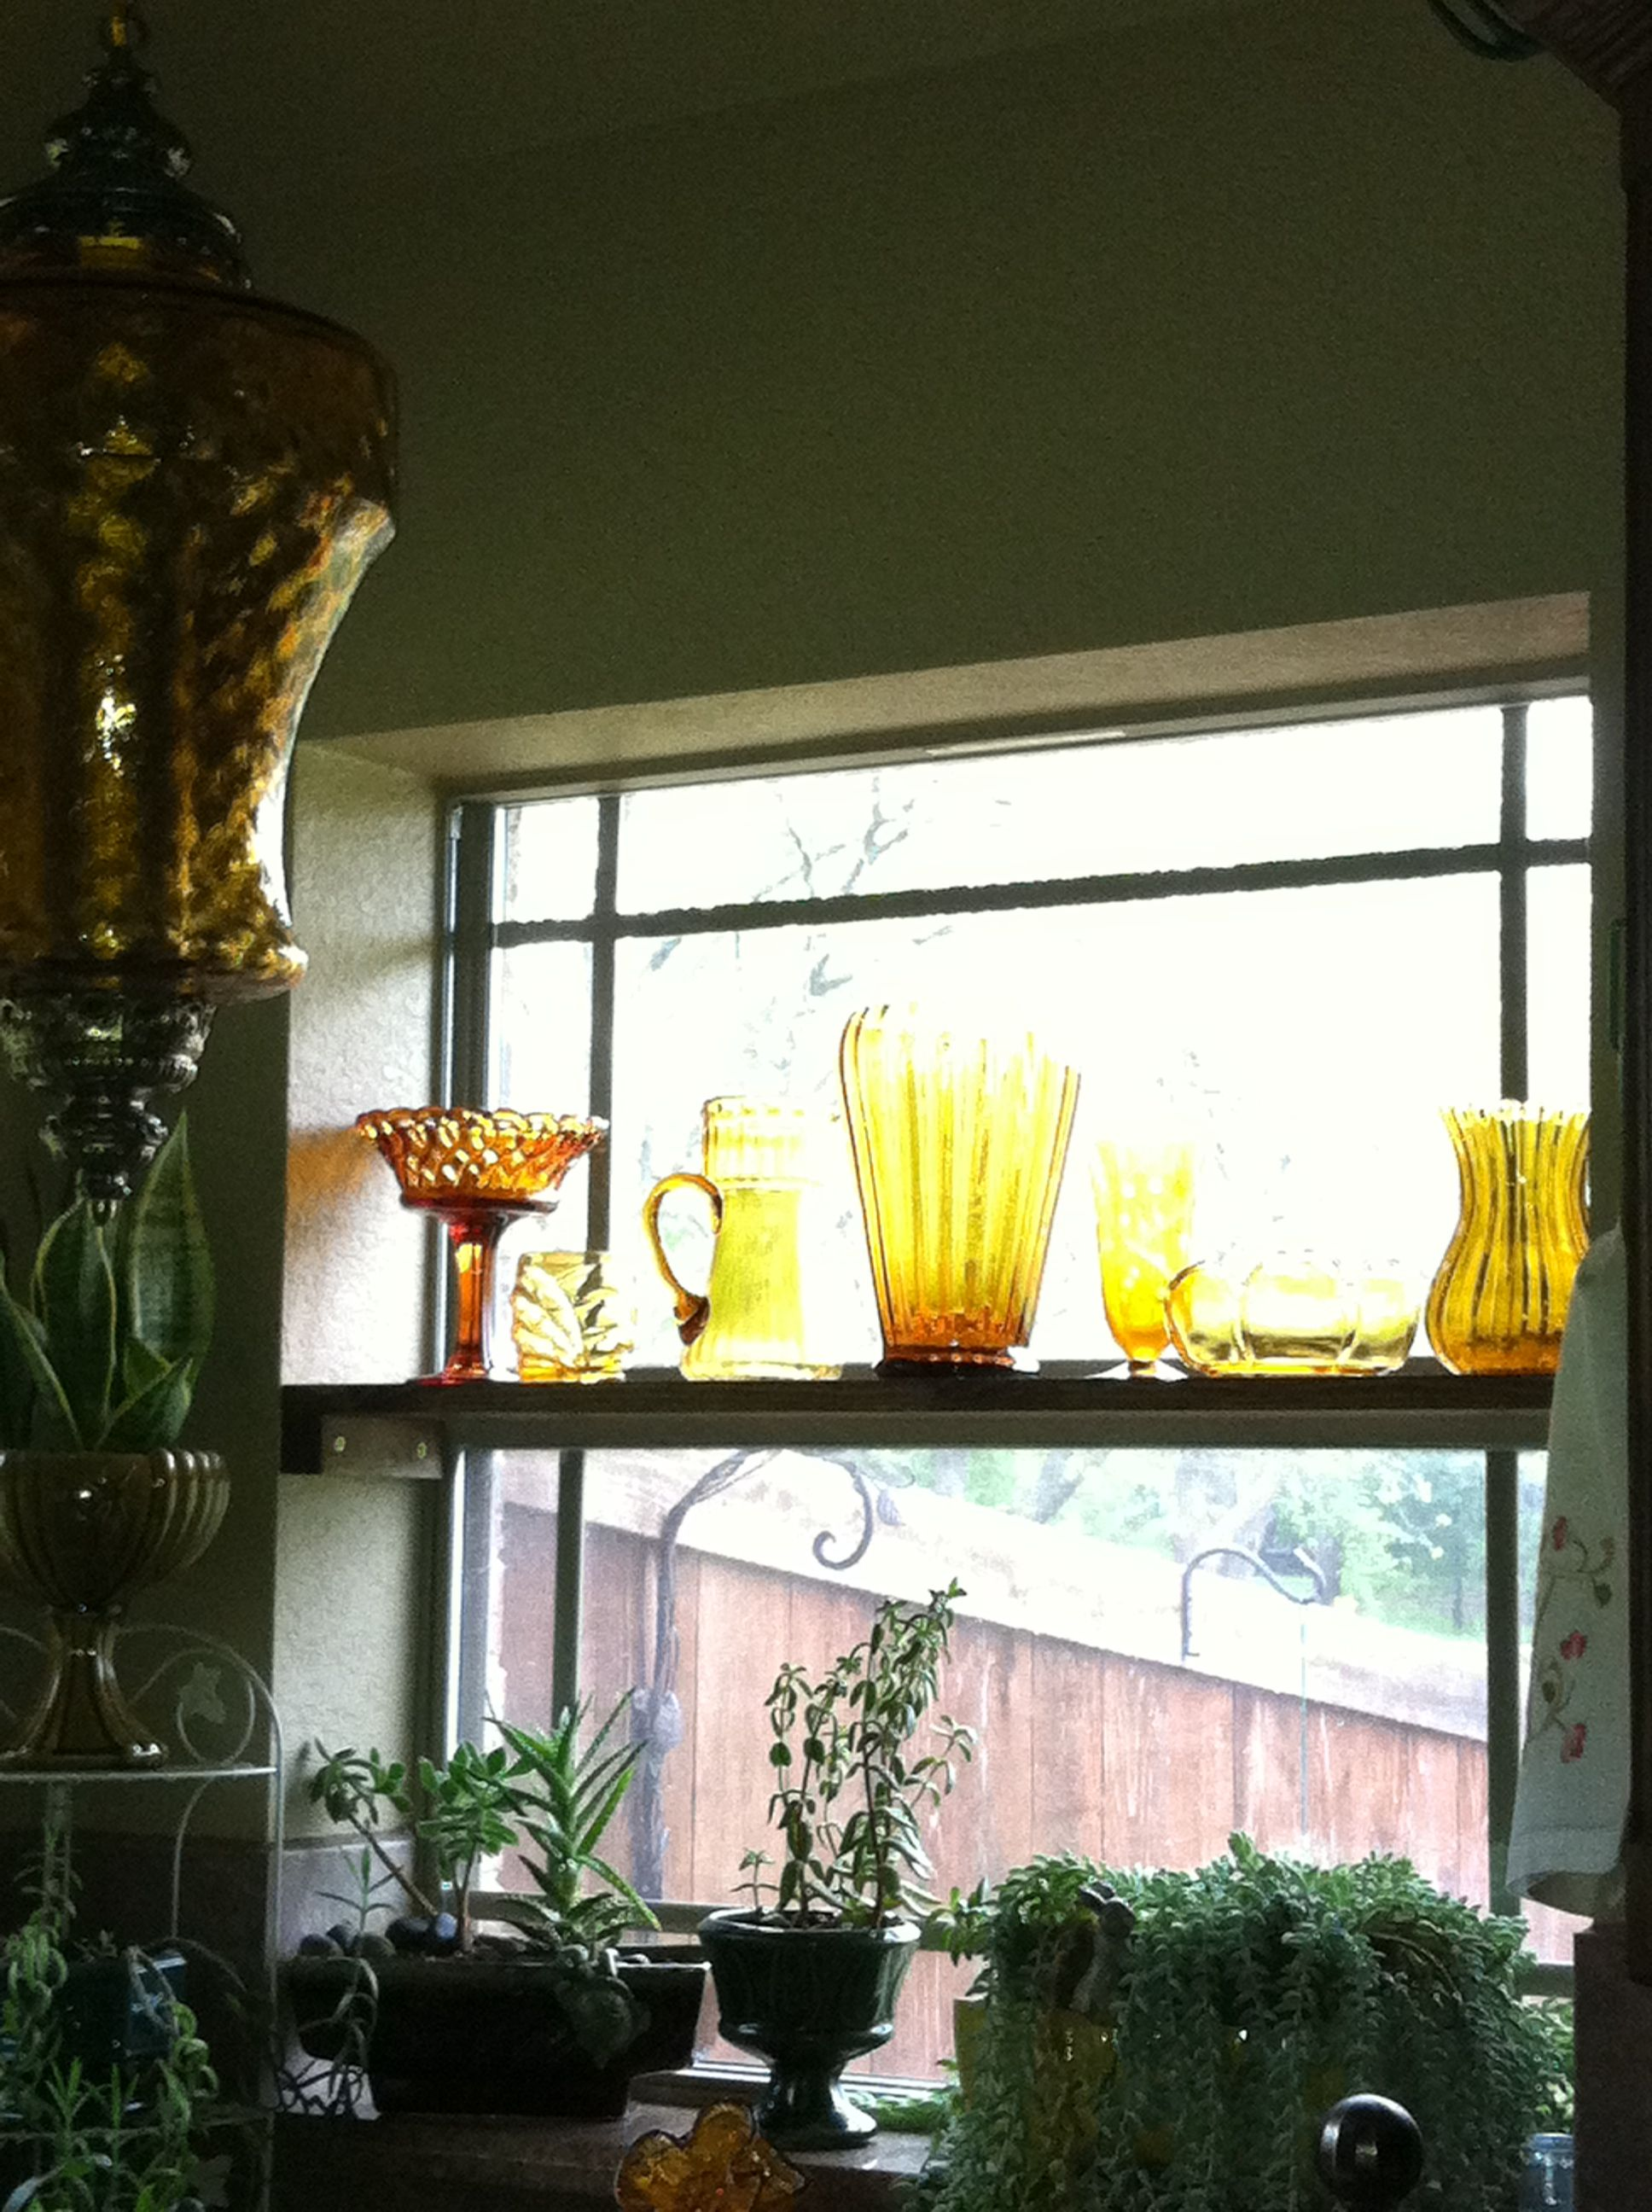 Love the way the light is shining through my Vintage Amber Glass.  The shelf of glass was inspired by my Amber Swag Lamp!